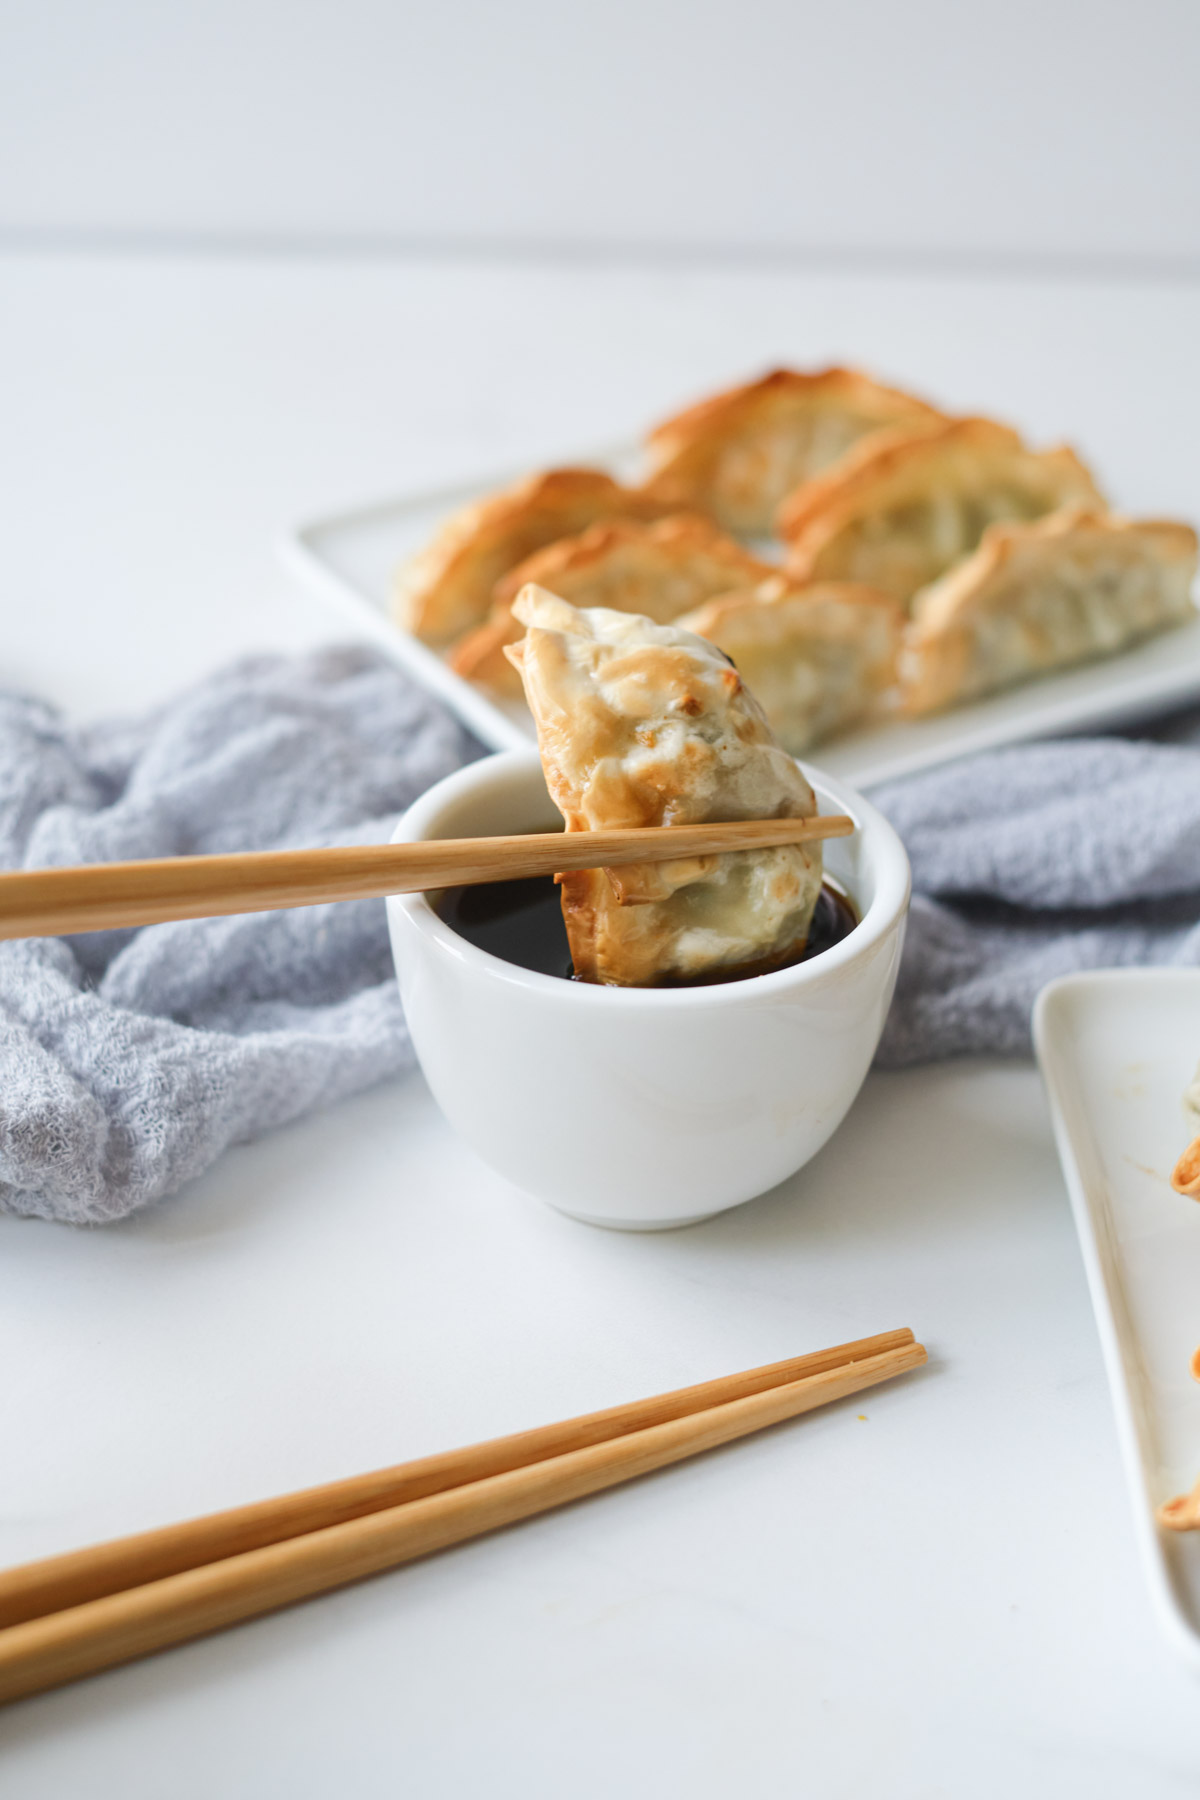 one air fryer frozen potsticker being dunked in dipping sauce